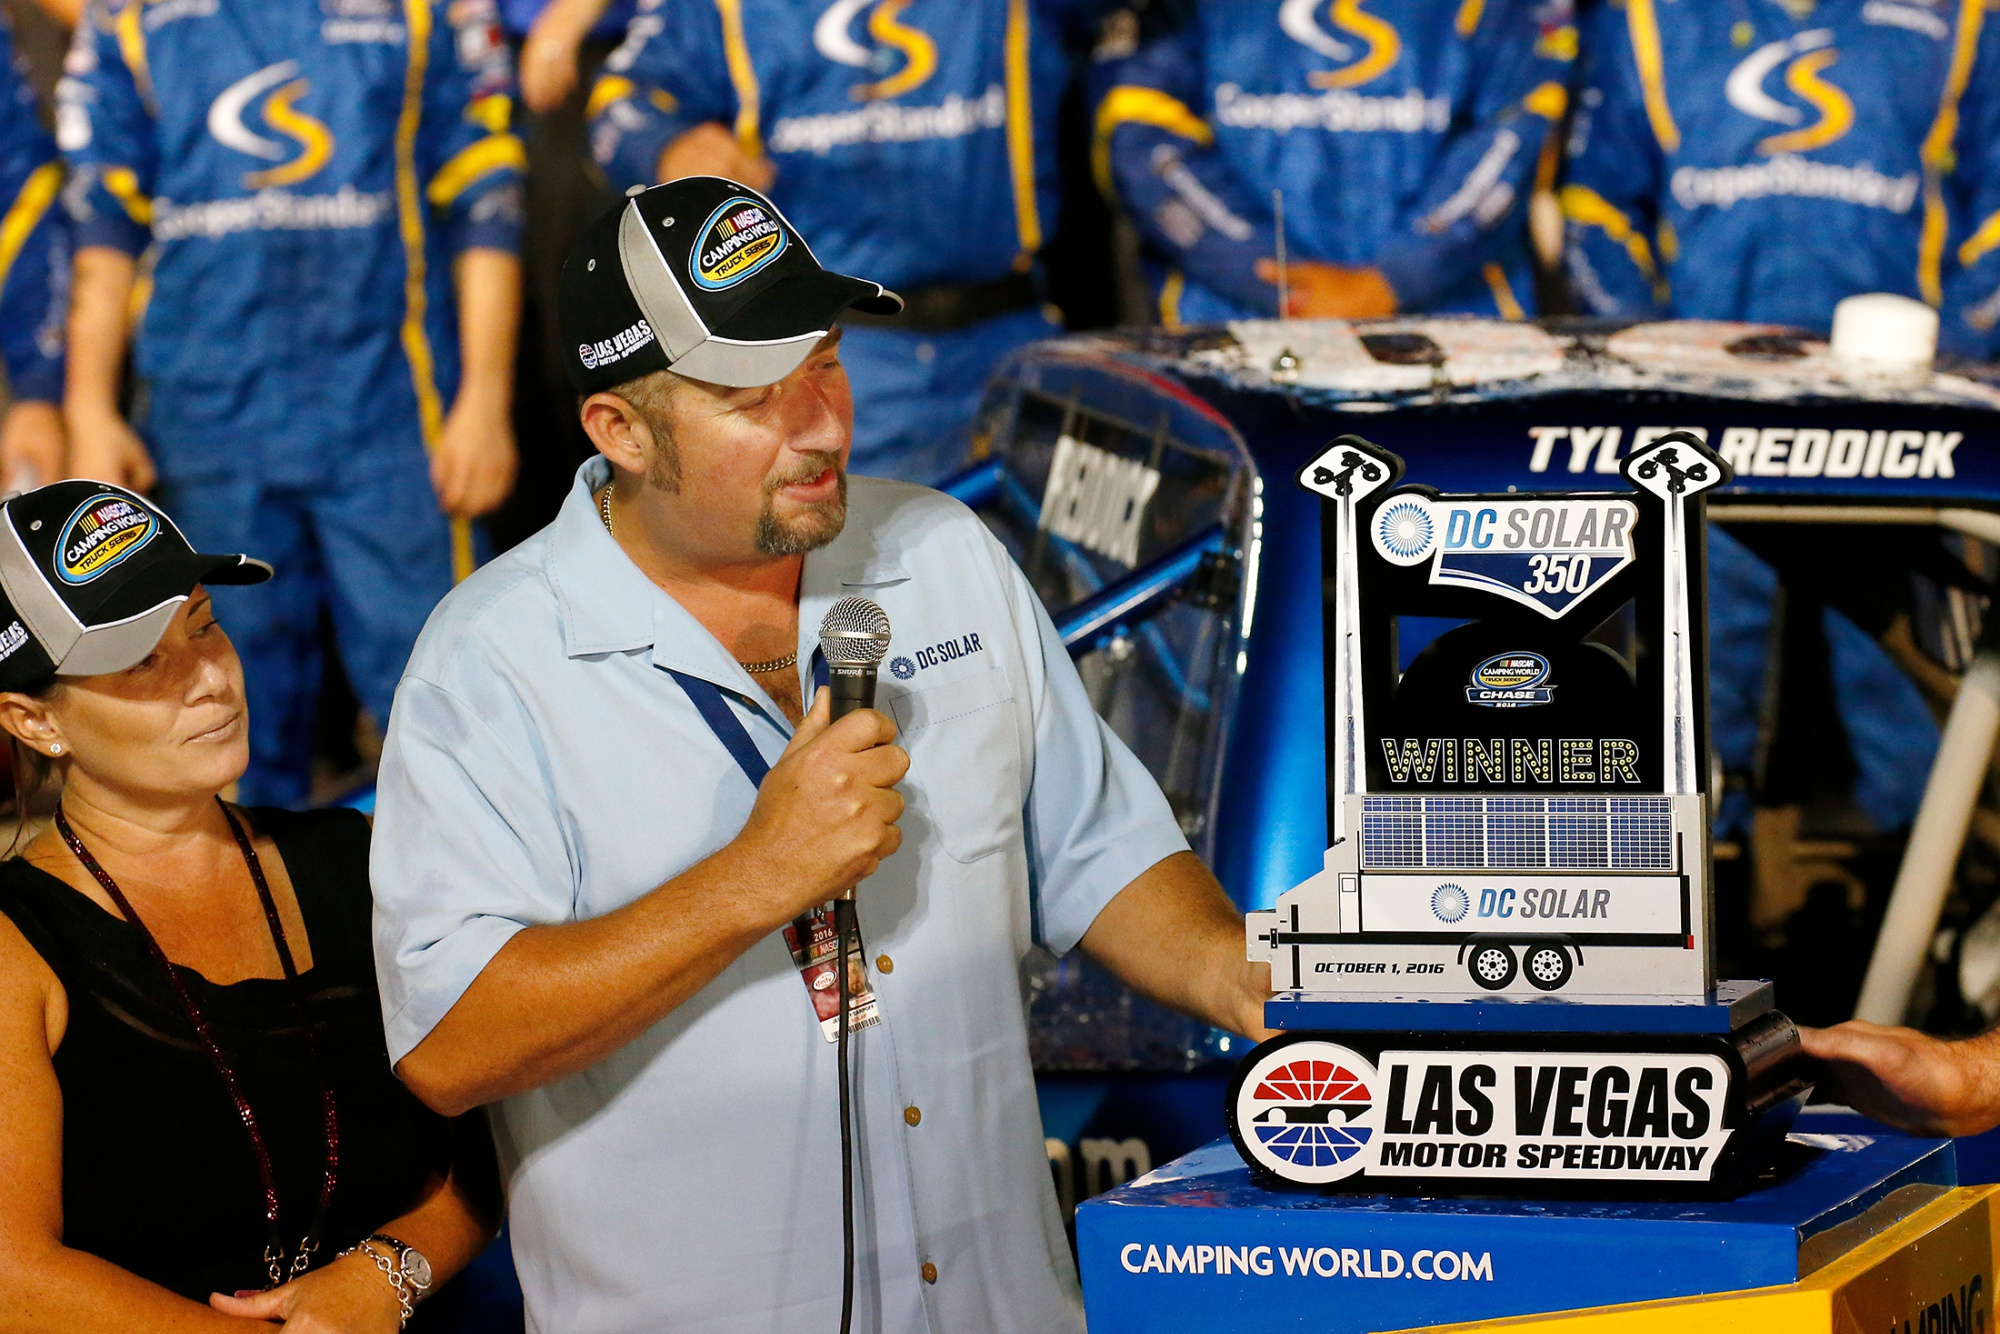 Jeff Carpoff presents a trophy at a racing event.